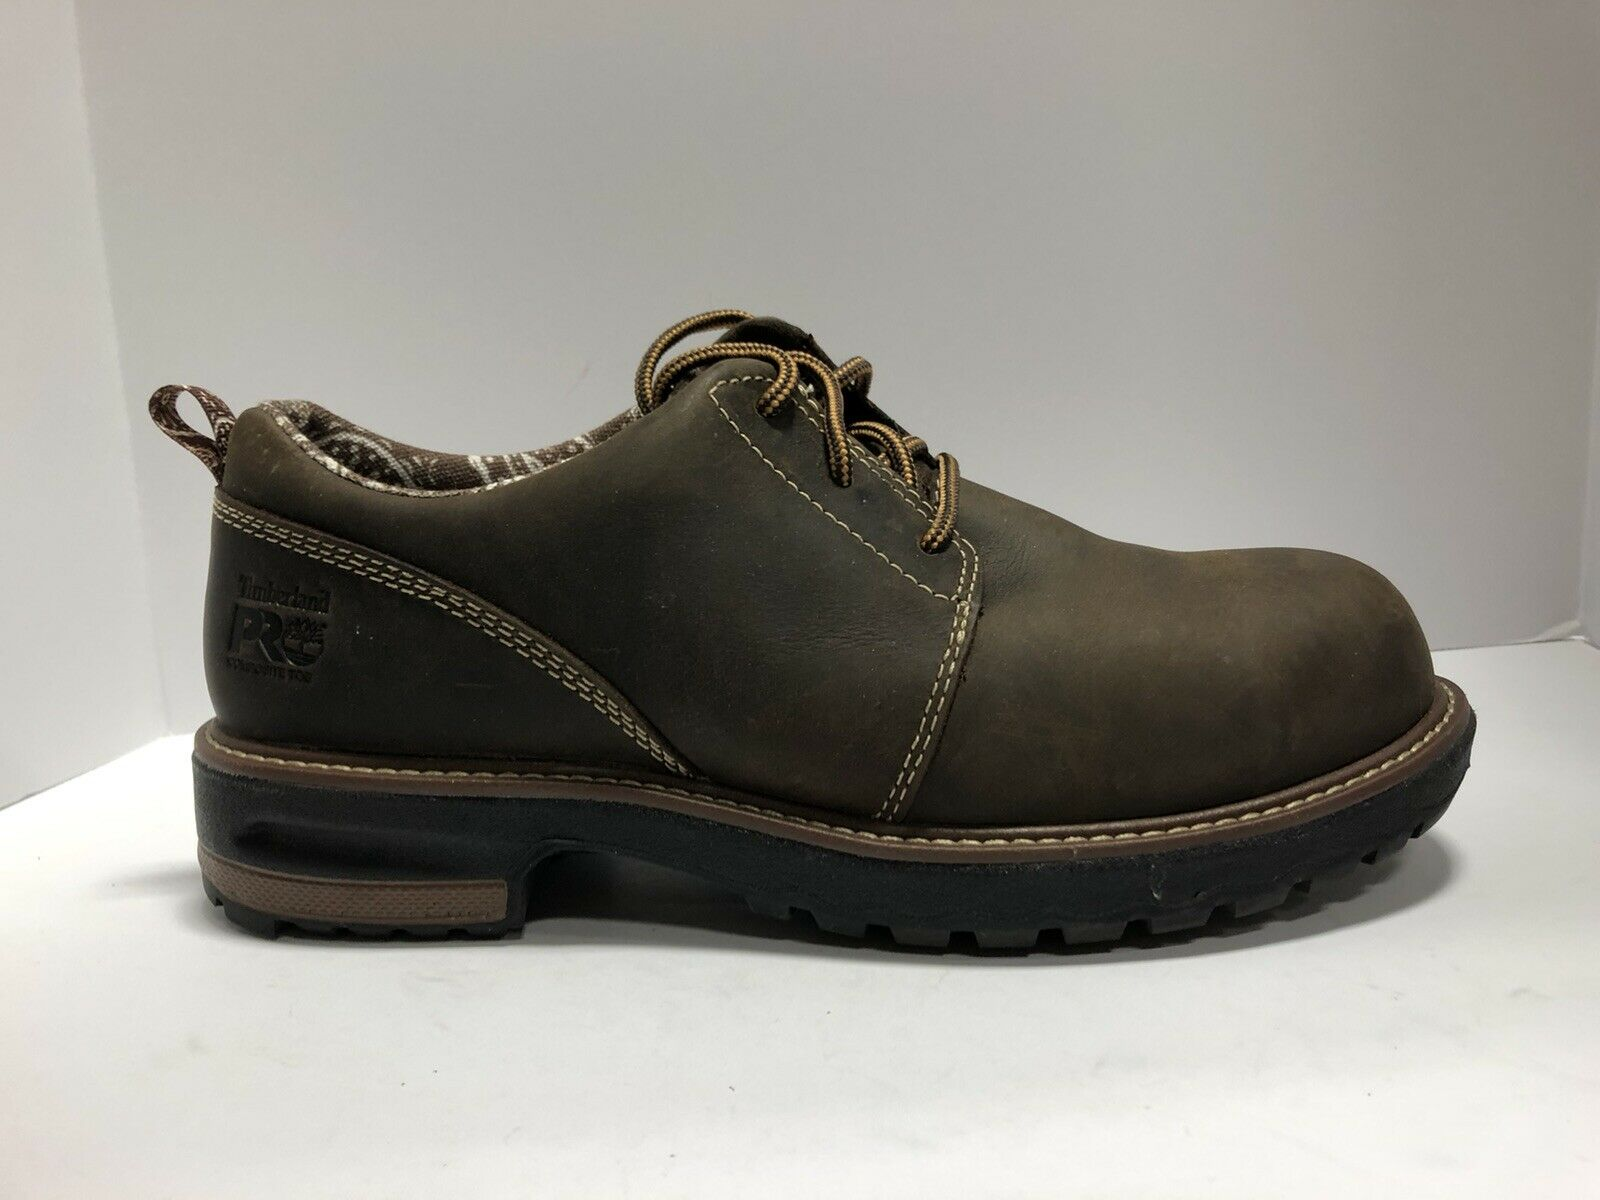 Timberland Pro Hightower Womens Oxford Brown Leather Size 9.5 M